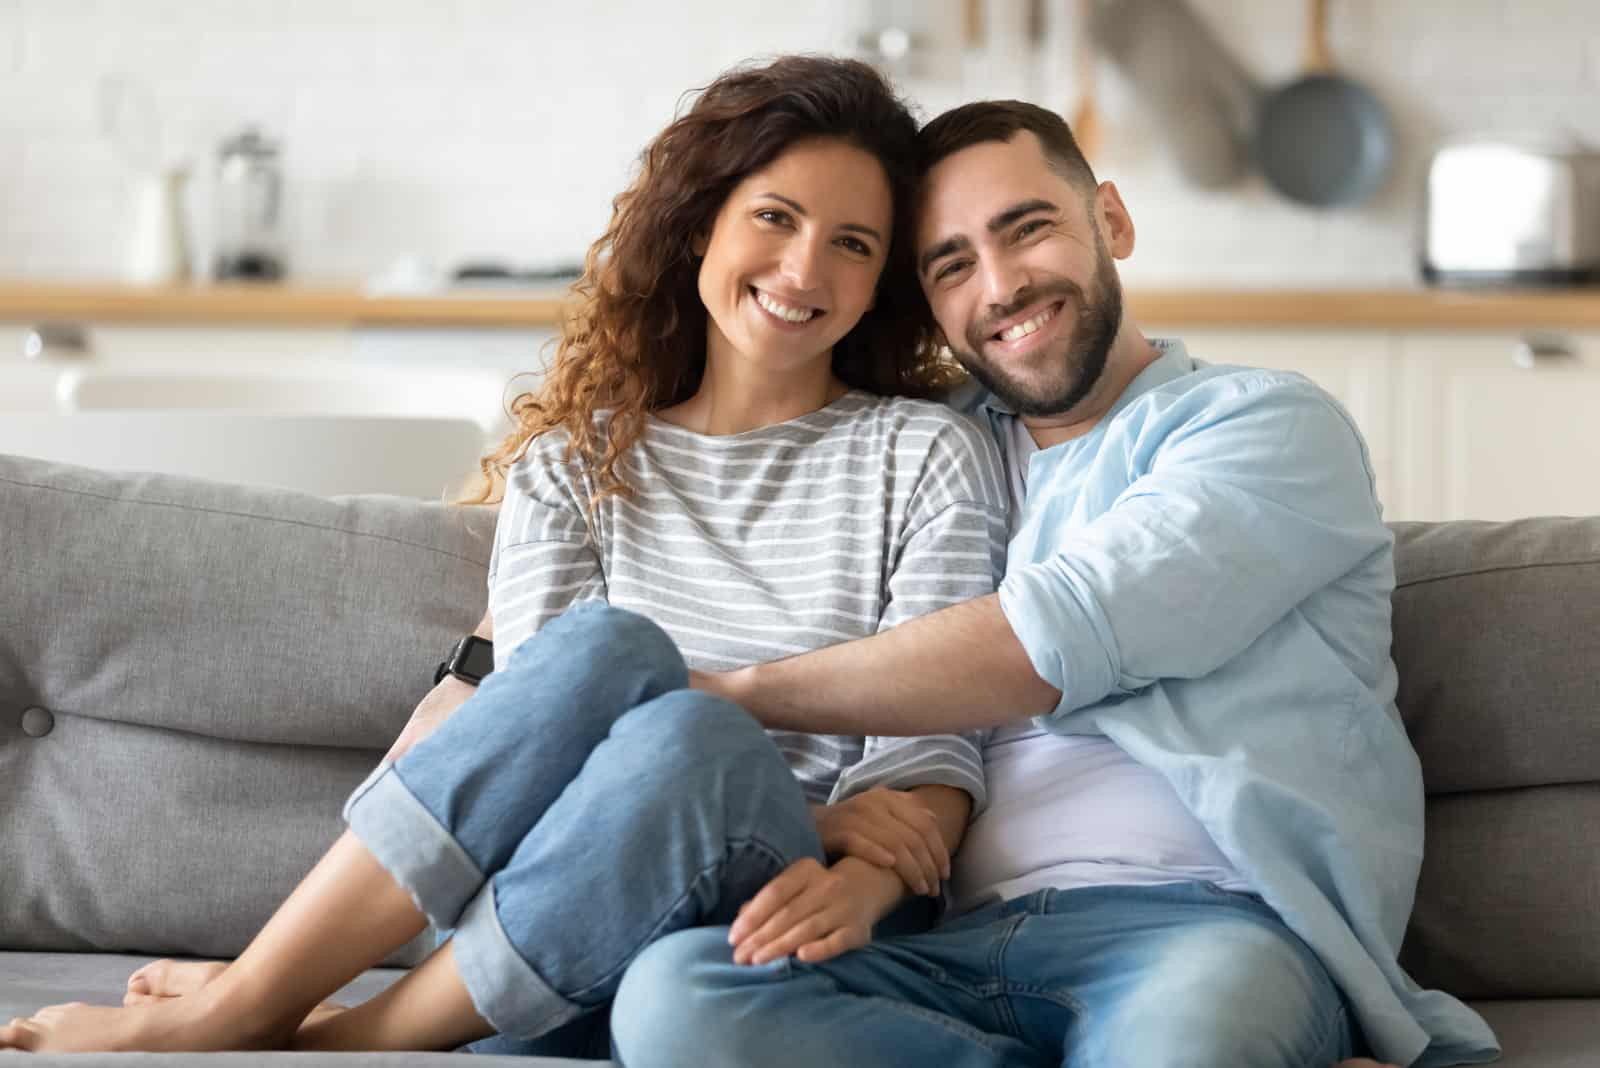 a man and a woman laugh laughing sitting on the couch